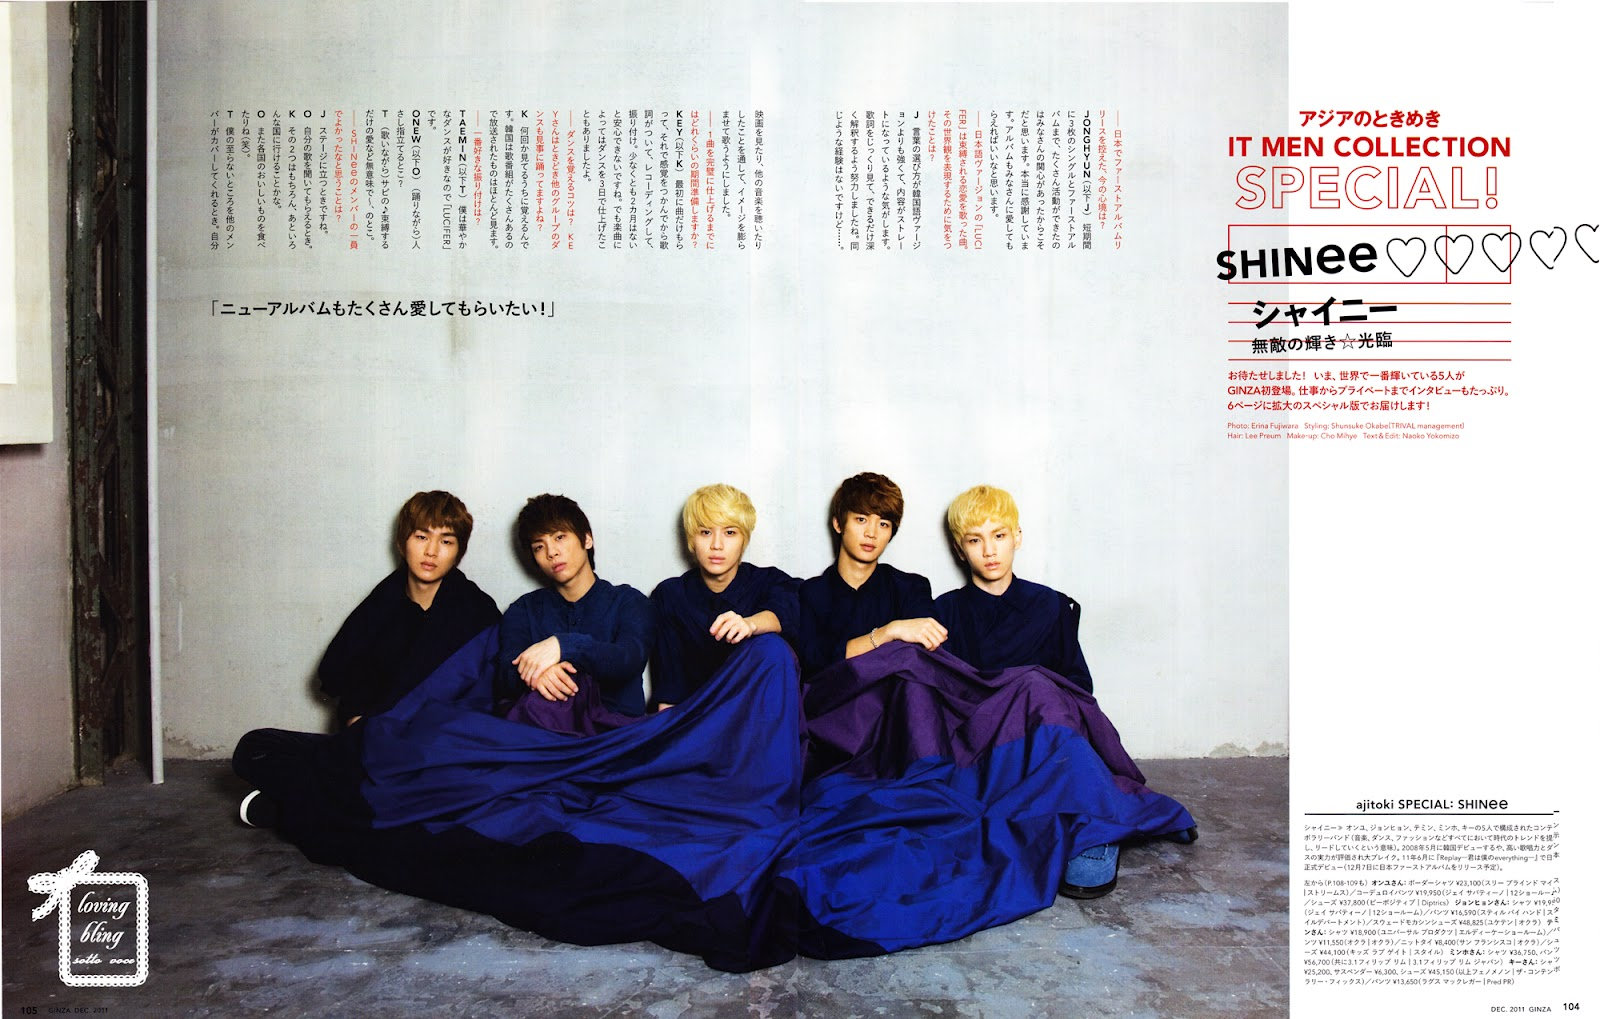 http://2.bp.blogspot.com/-MxtNLmCBbwQ/T0wP9F5uszI/AAAAAAAAAmA/Gu17MGEM7Z4/s1600/shinee+ginza+fashion+photo.jpg